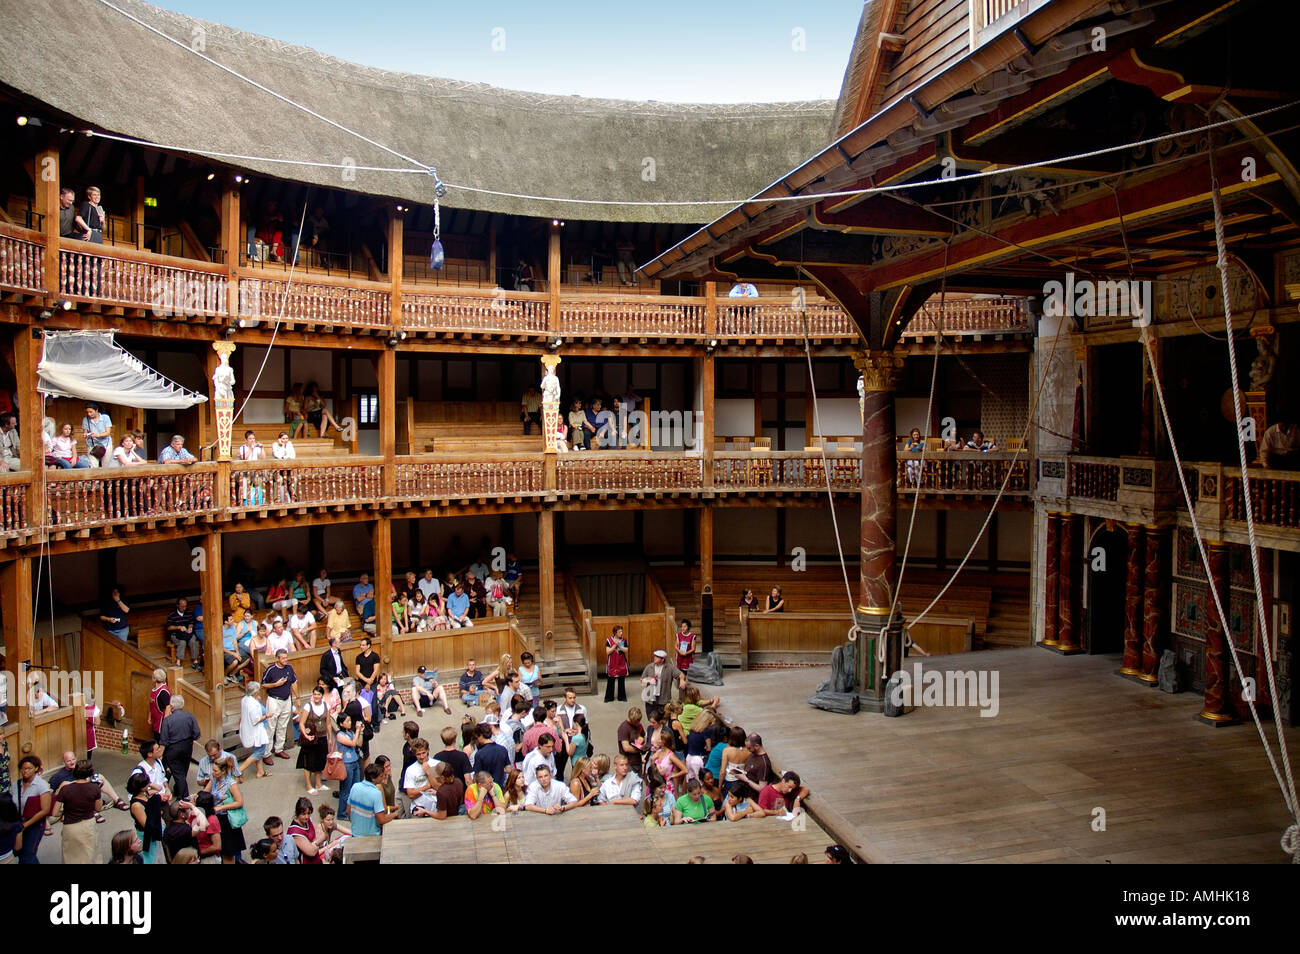 shakespeares globe theatre Shakespeare's globe casts its own artistic director as hamlet michelle terry in lead male role,  anders lustgarten's new play, the secret theatre,.